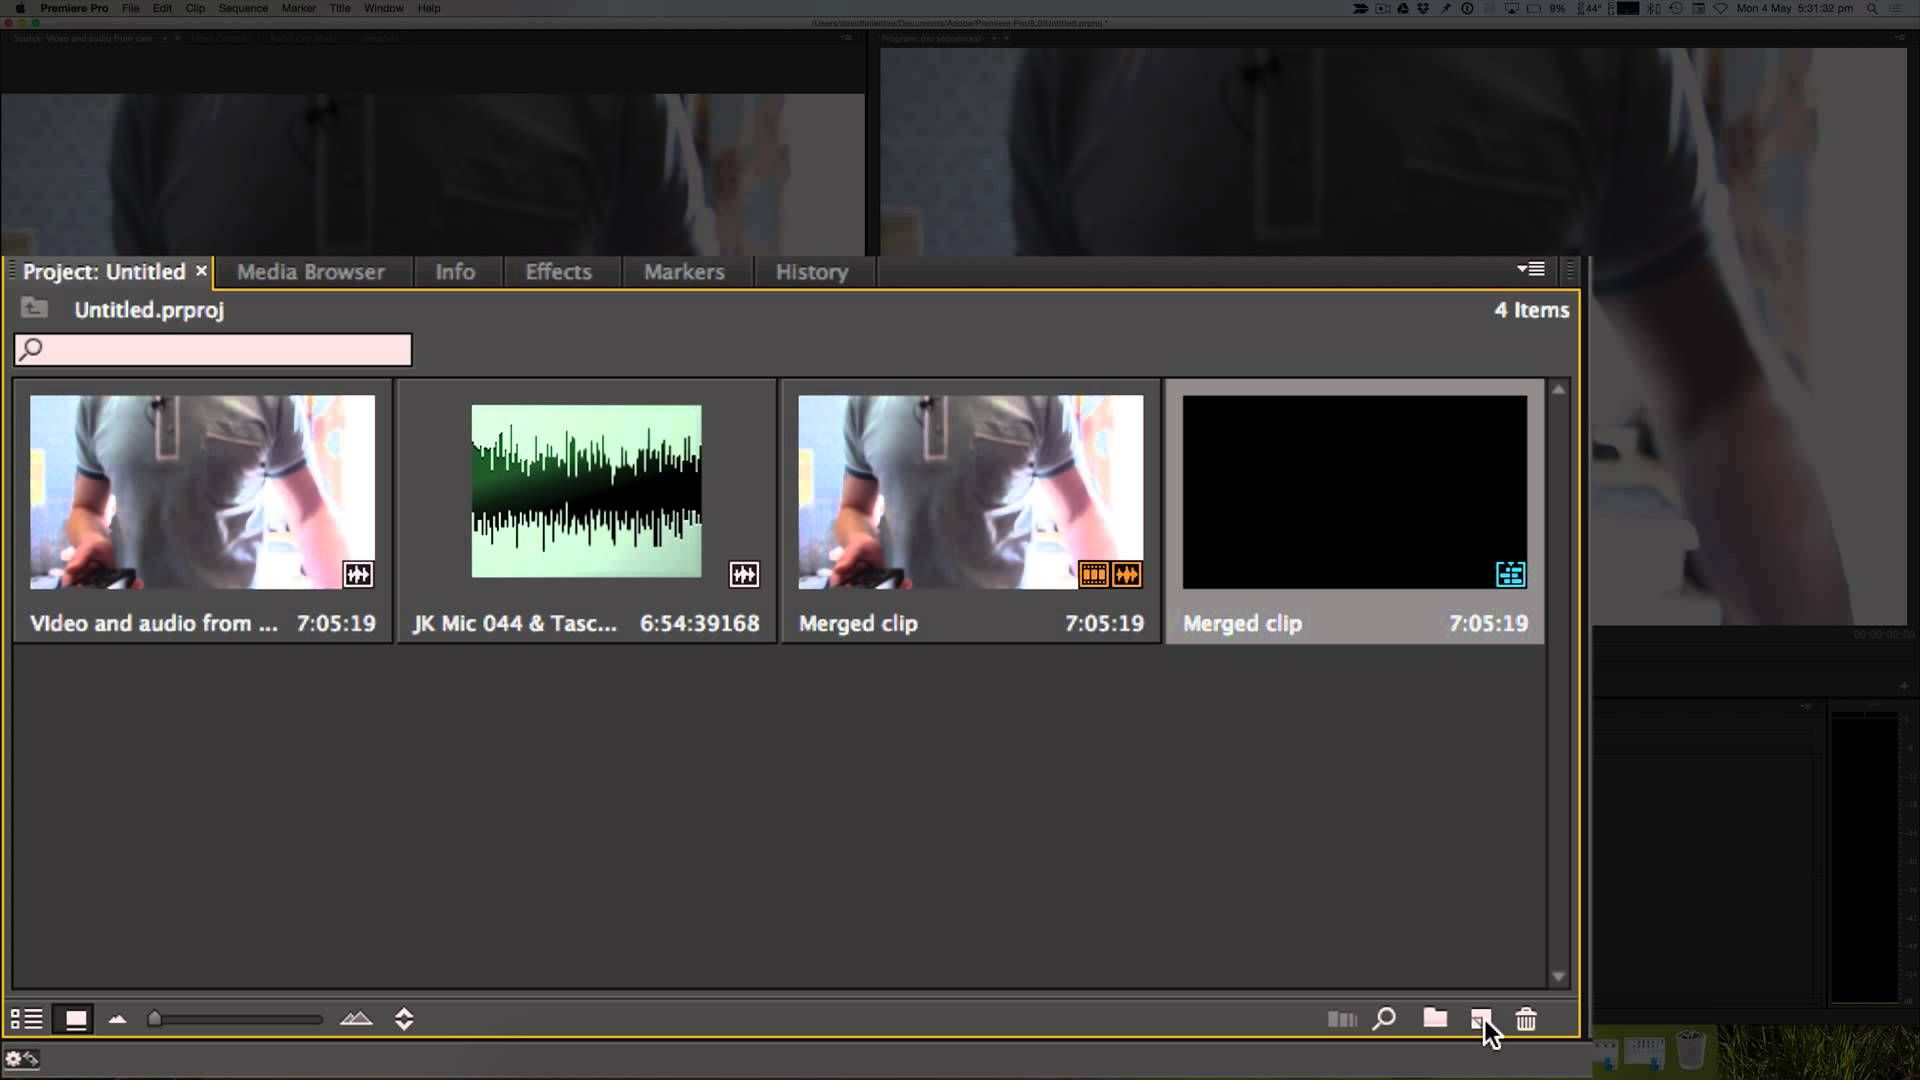 In This Video I Show How To Merge Sync Two Audio Tracks With Adobe Premiere Pro For Example When You Have Your Cameras Built Microphone And A